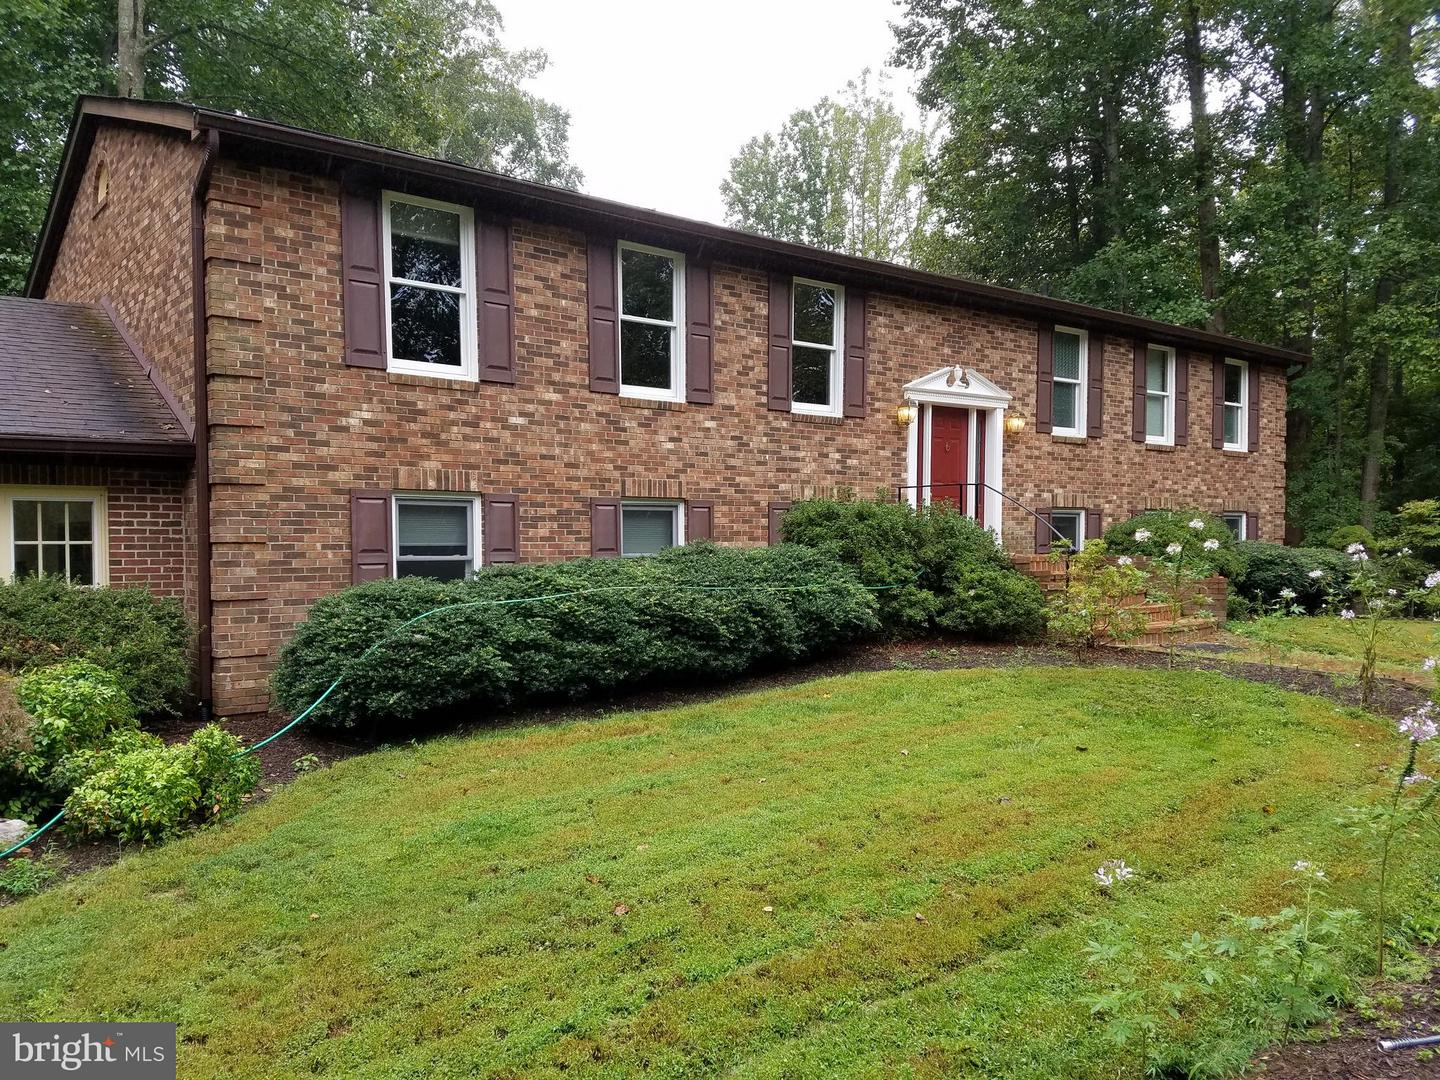 Other Residential for Rent at 11501 Lakewood Ln Fairfax Station, Virginia 22039 United States